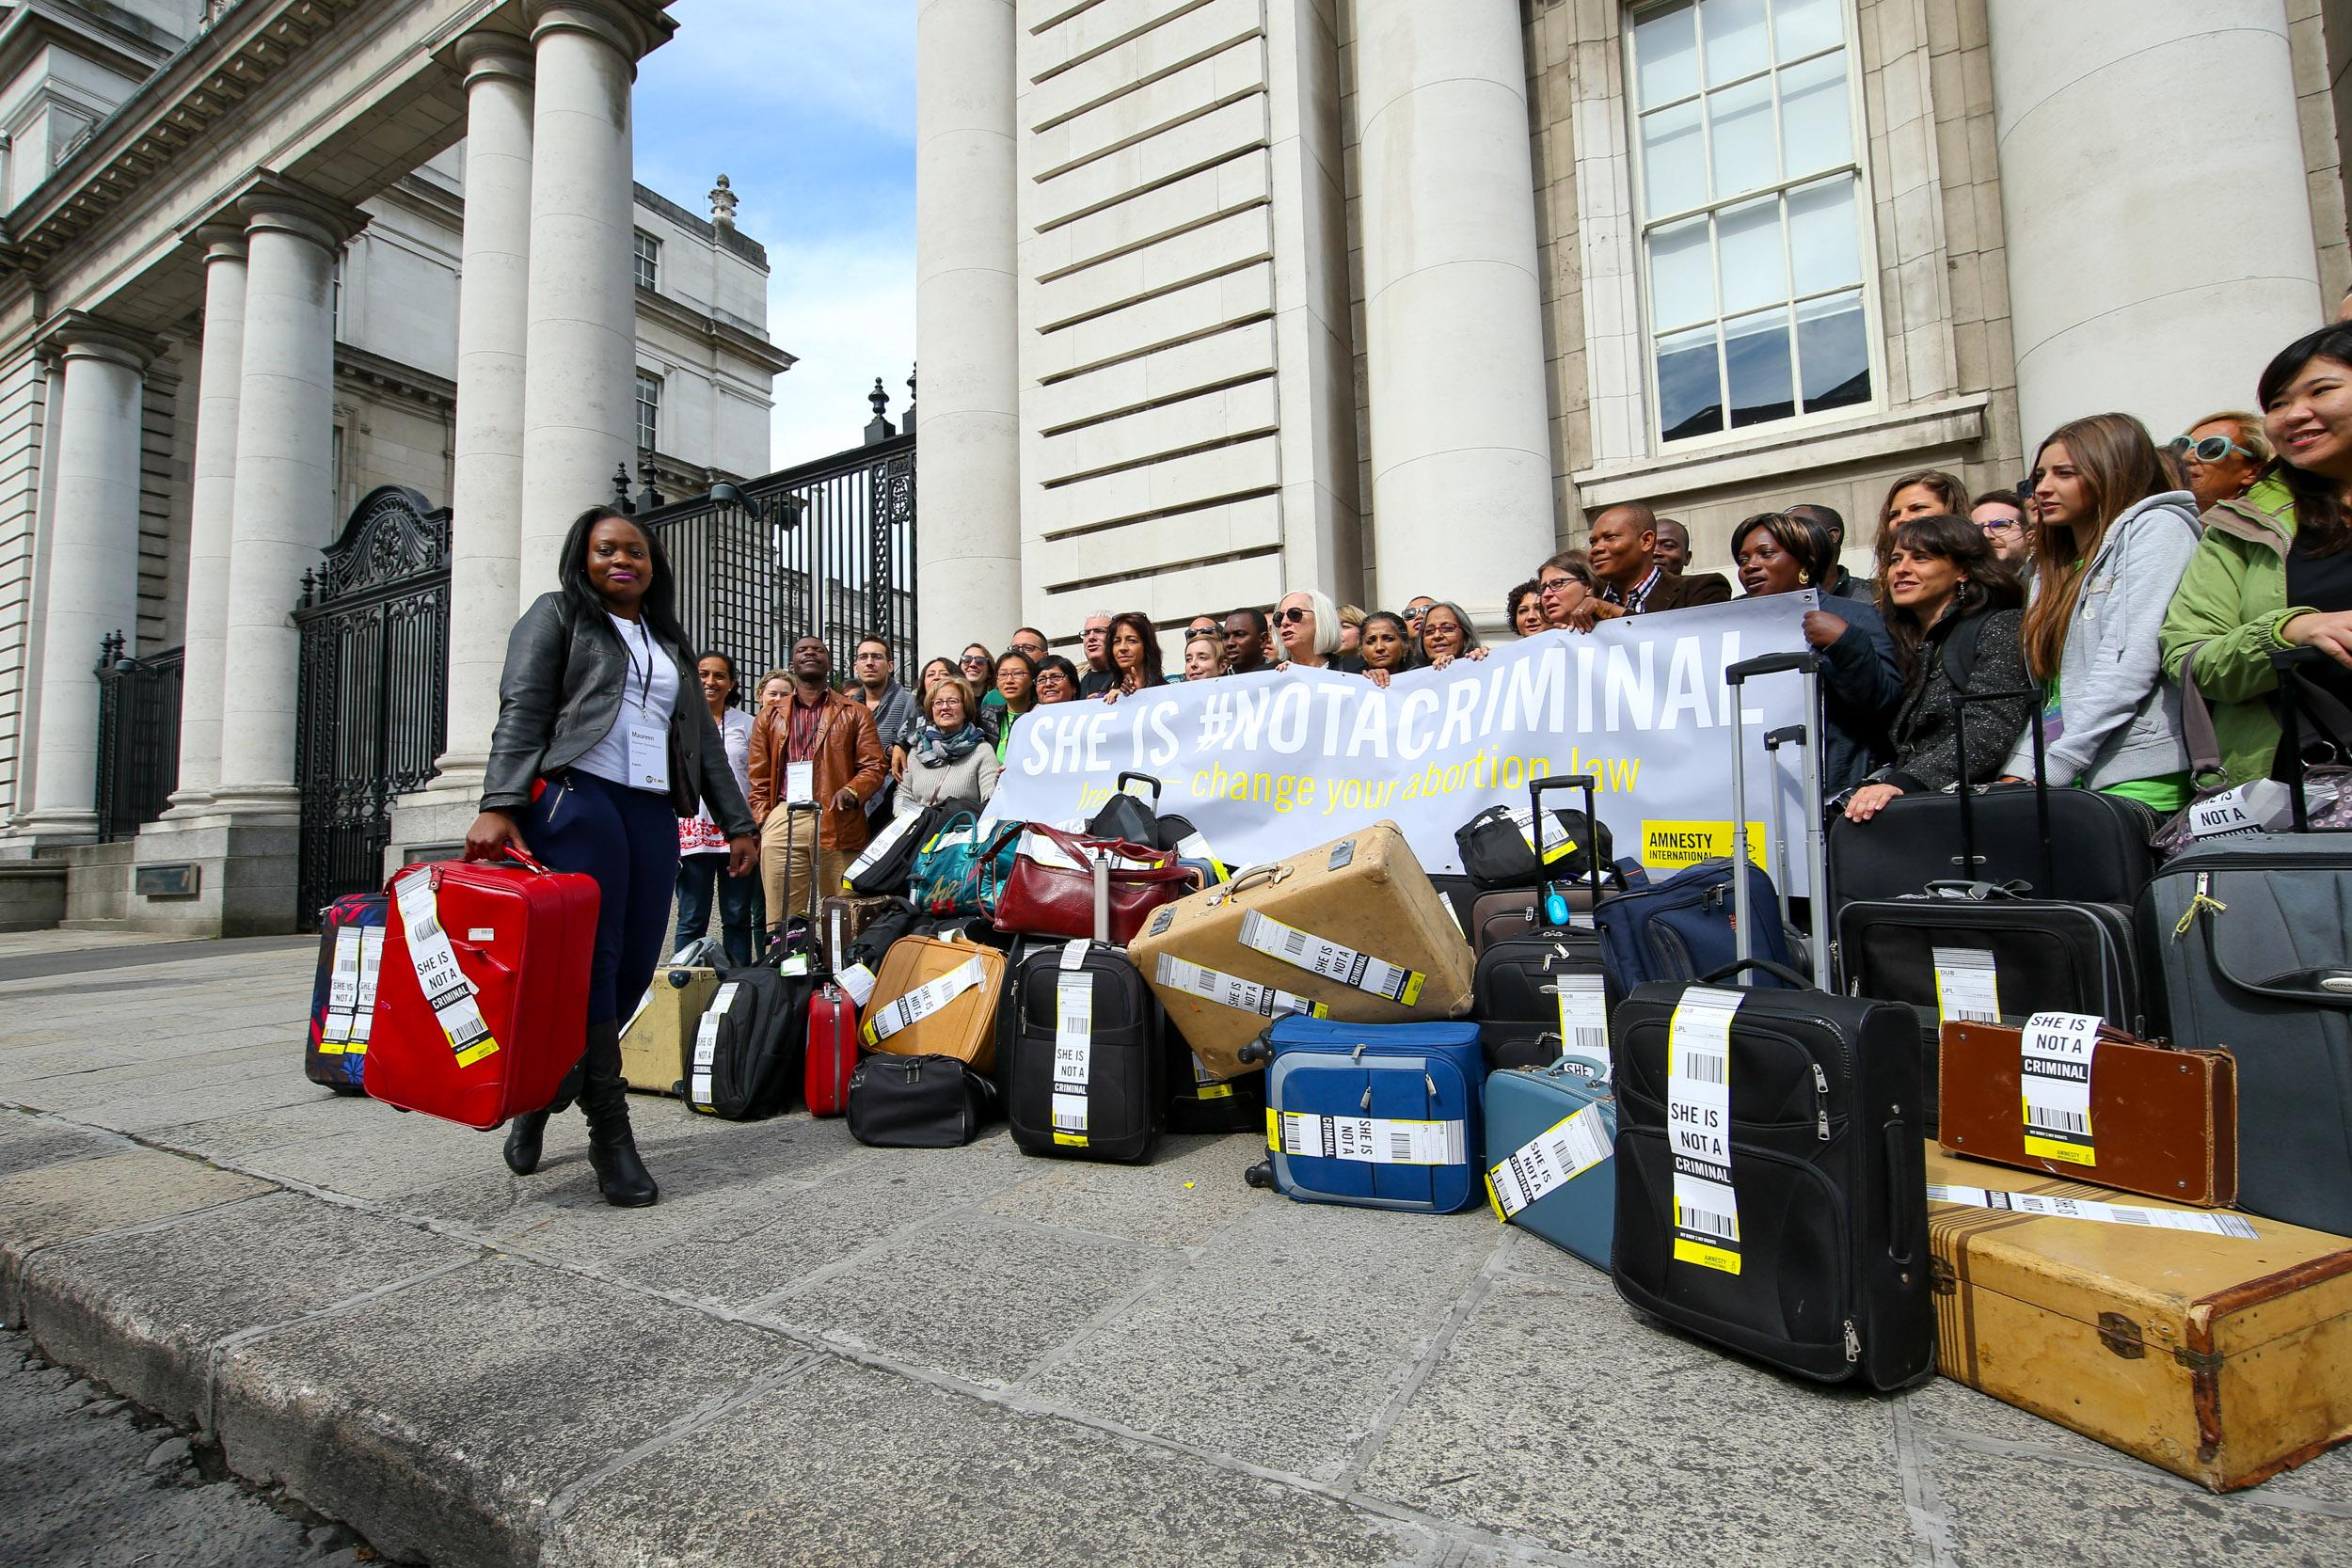 Northern Ireland: Amnesty urges politicians to back abortion law change